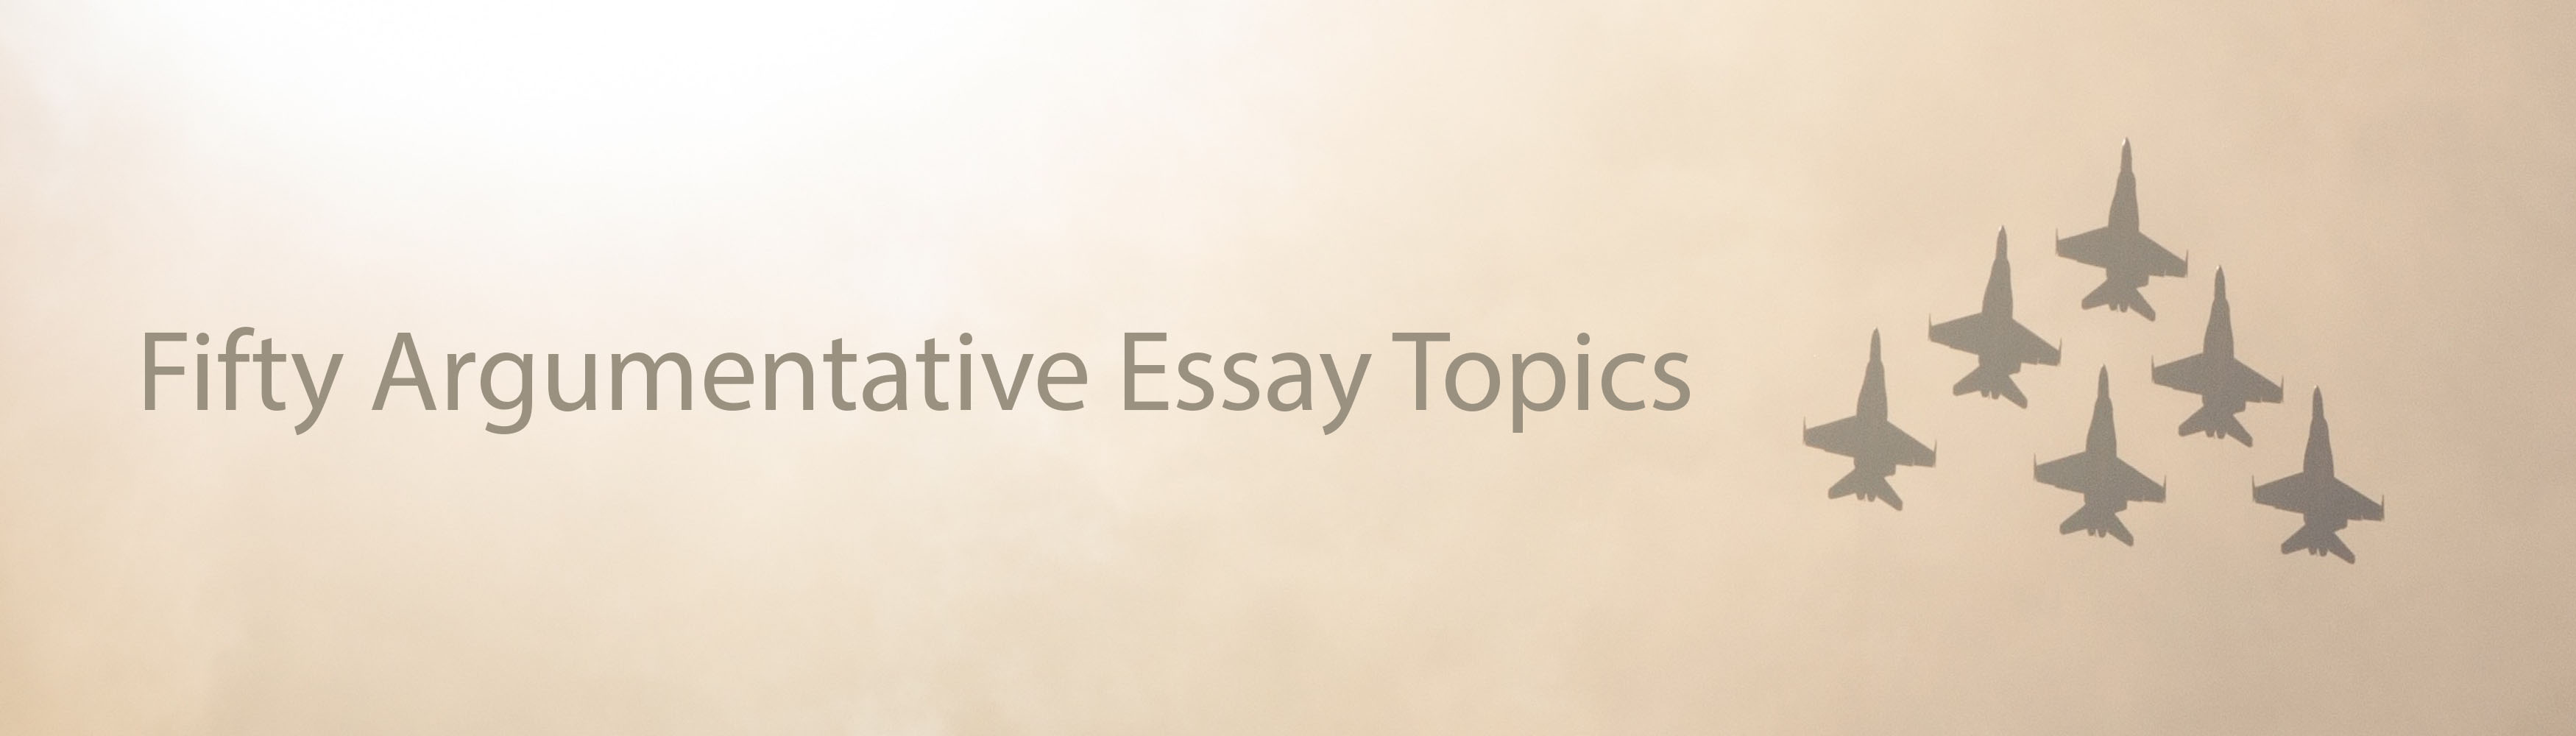 Fifty Argumentative Essay Topics